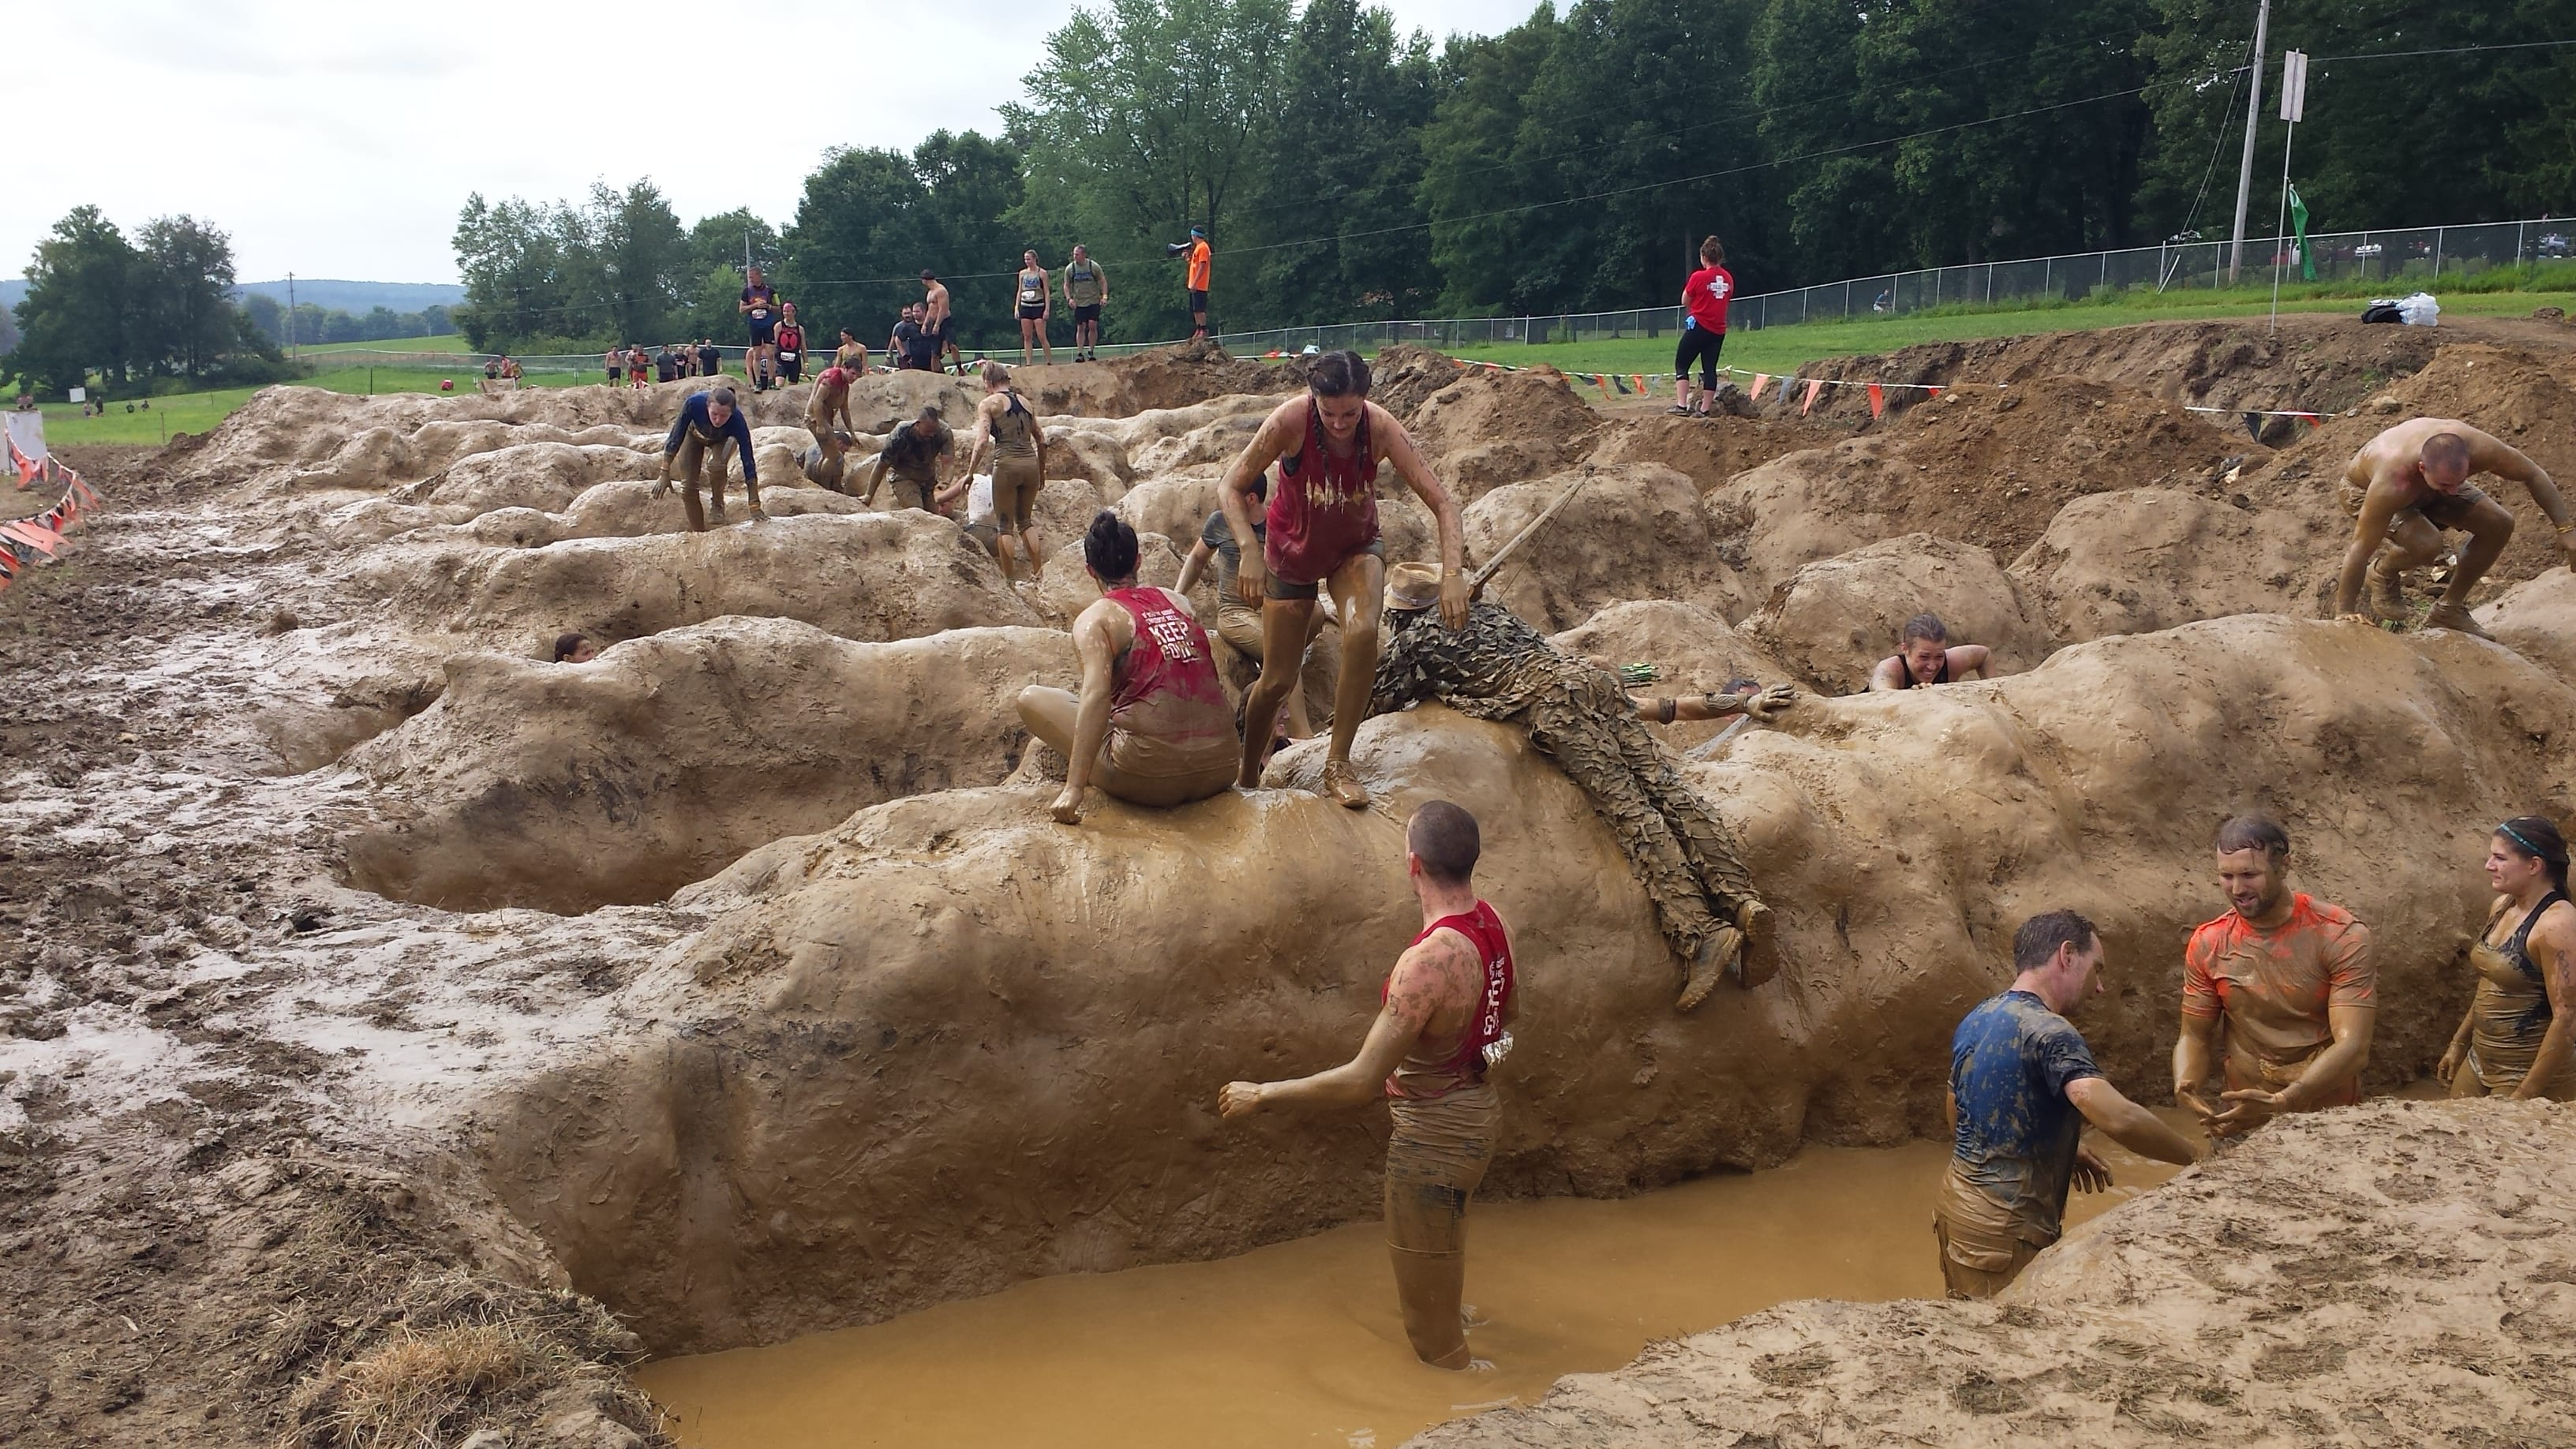 Kids Obstacle Challenge is an adventure and obstacle course race for kids ages , with fun and challenging obstacles and mud. Parents run for free.